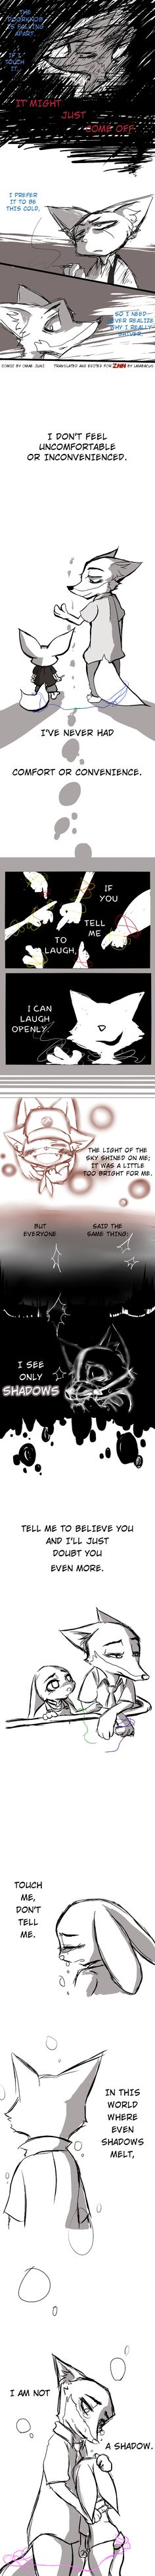 Comic: Connection (Original by Omae Juni) - Zootopia News Network